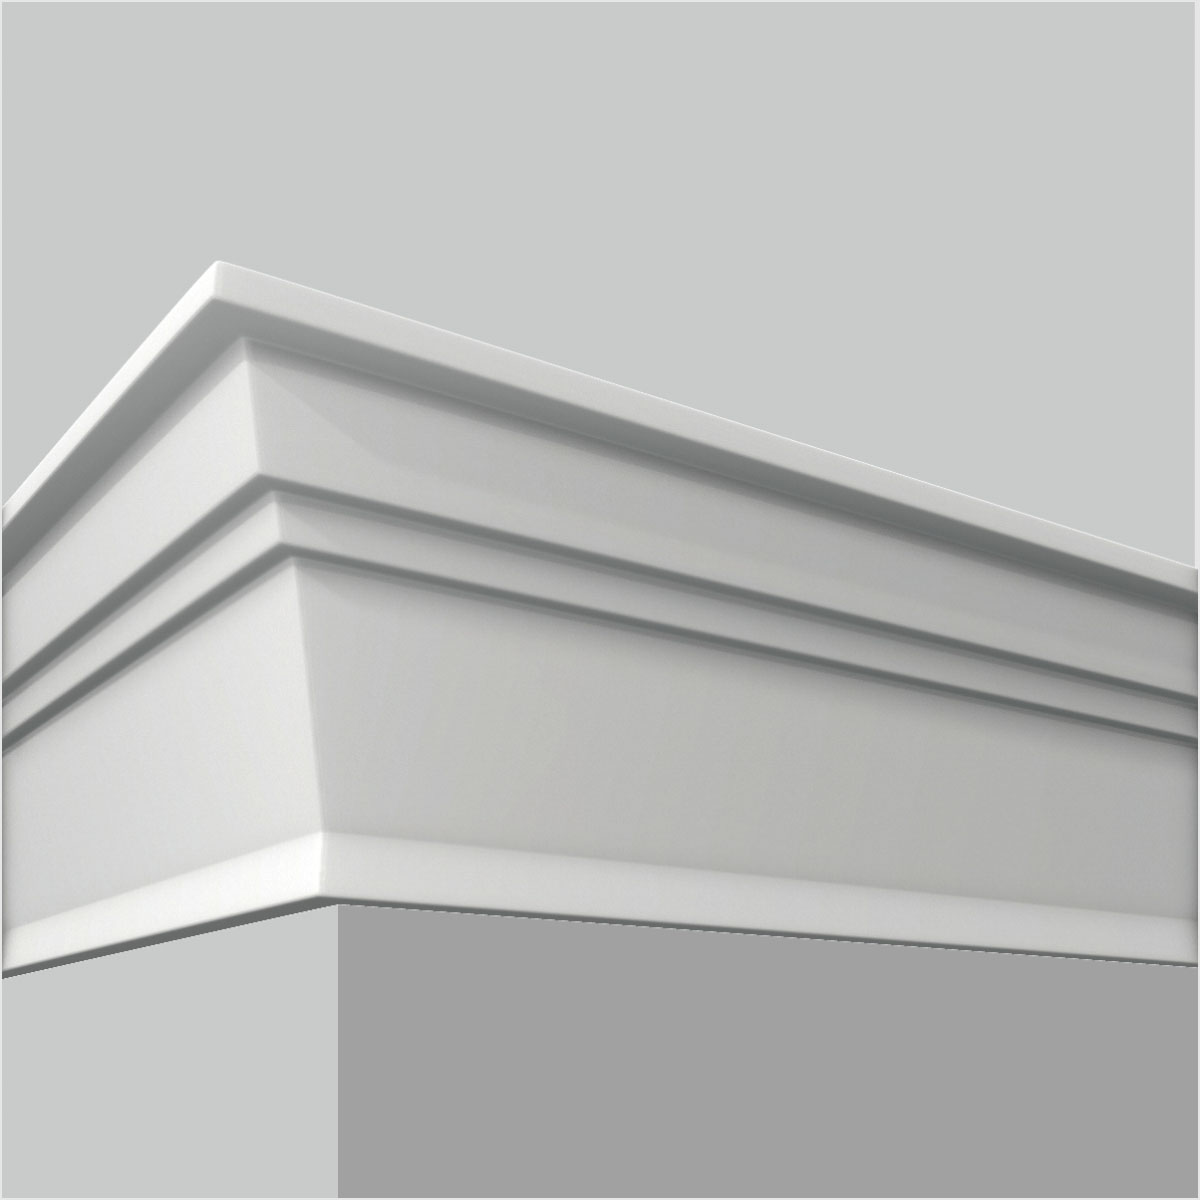 H&K Goodware PU cornices and mouldings supply